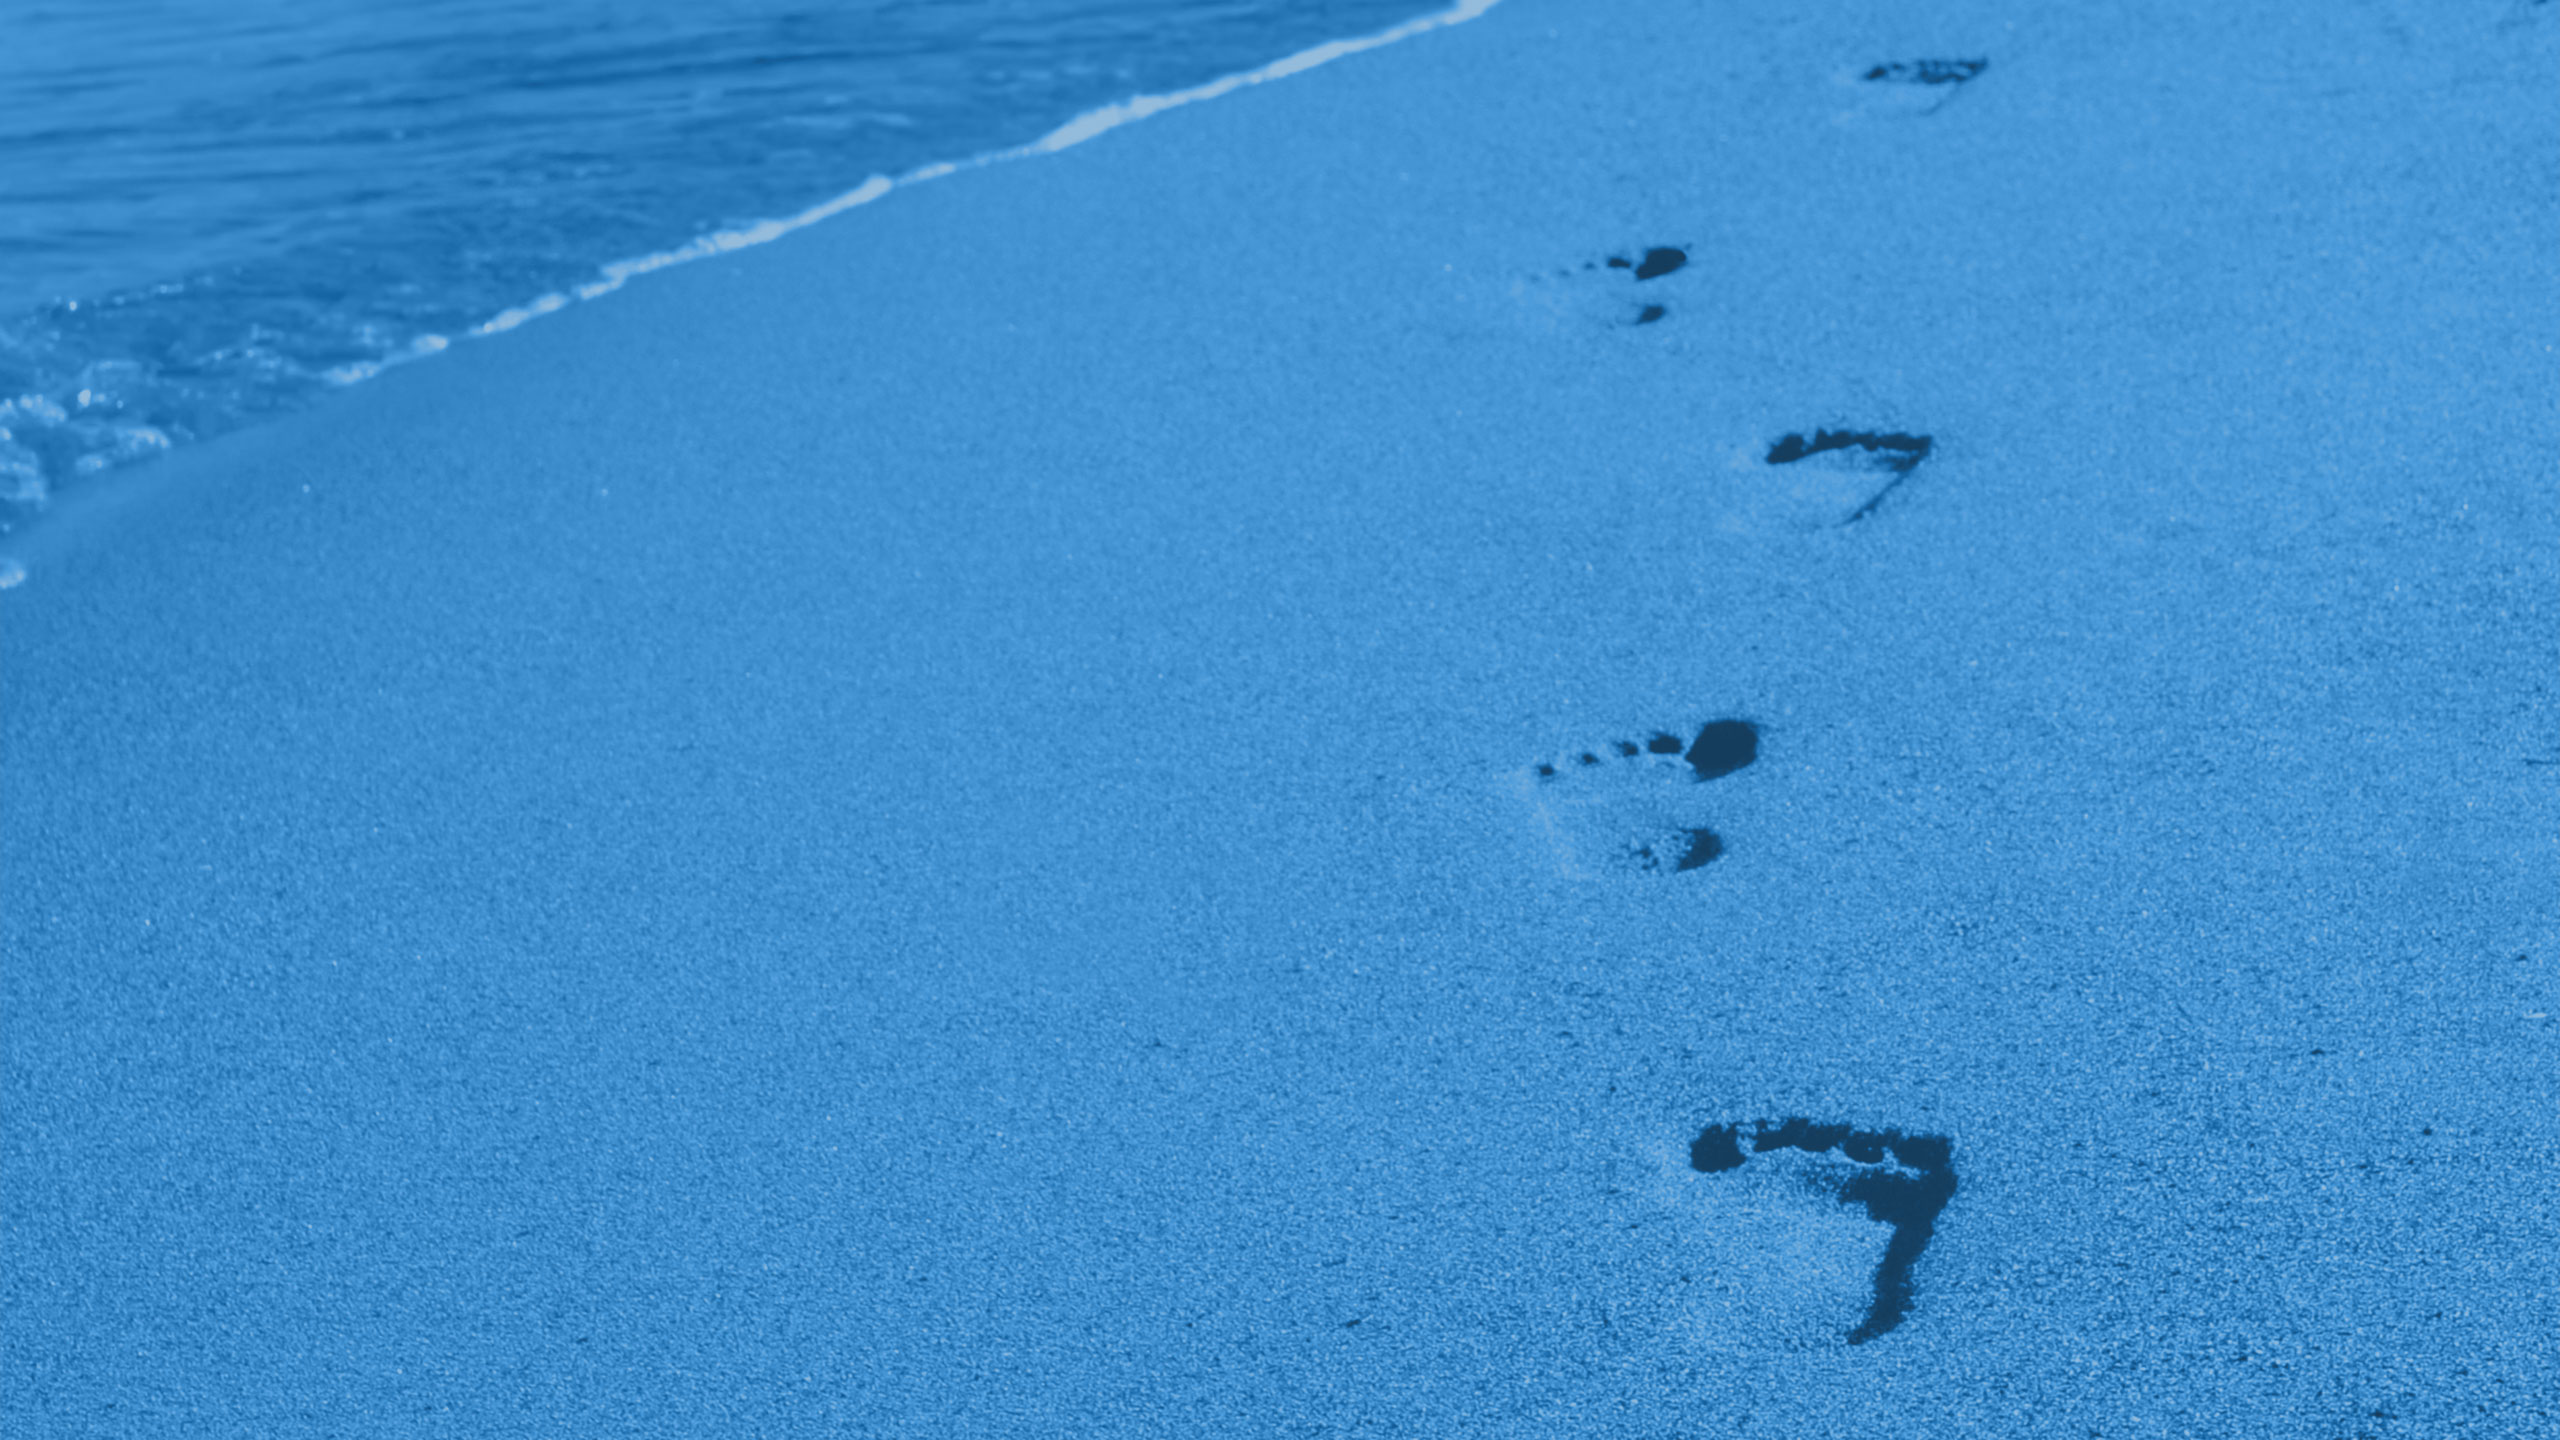 Footprints_Blue